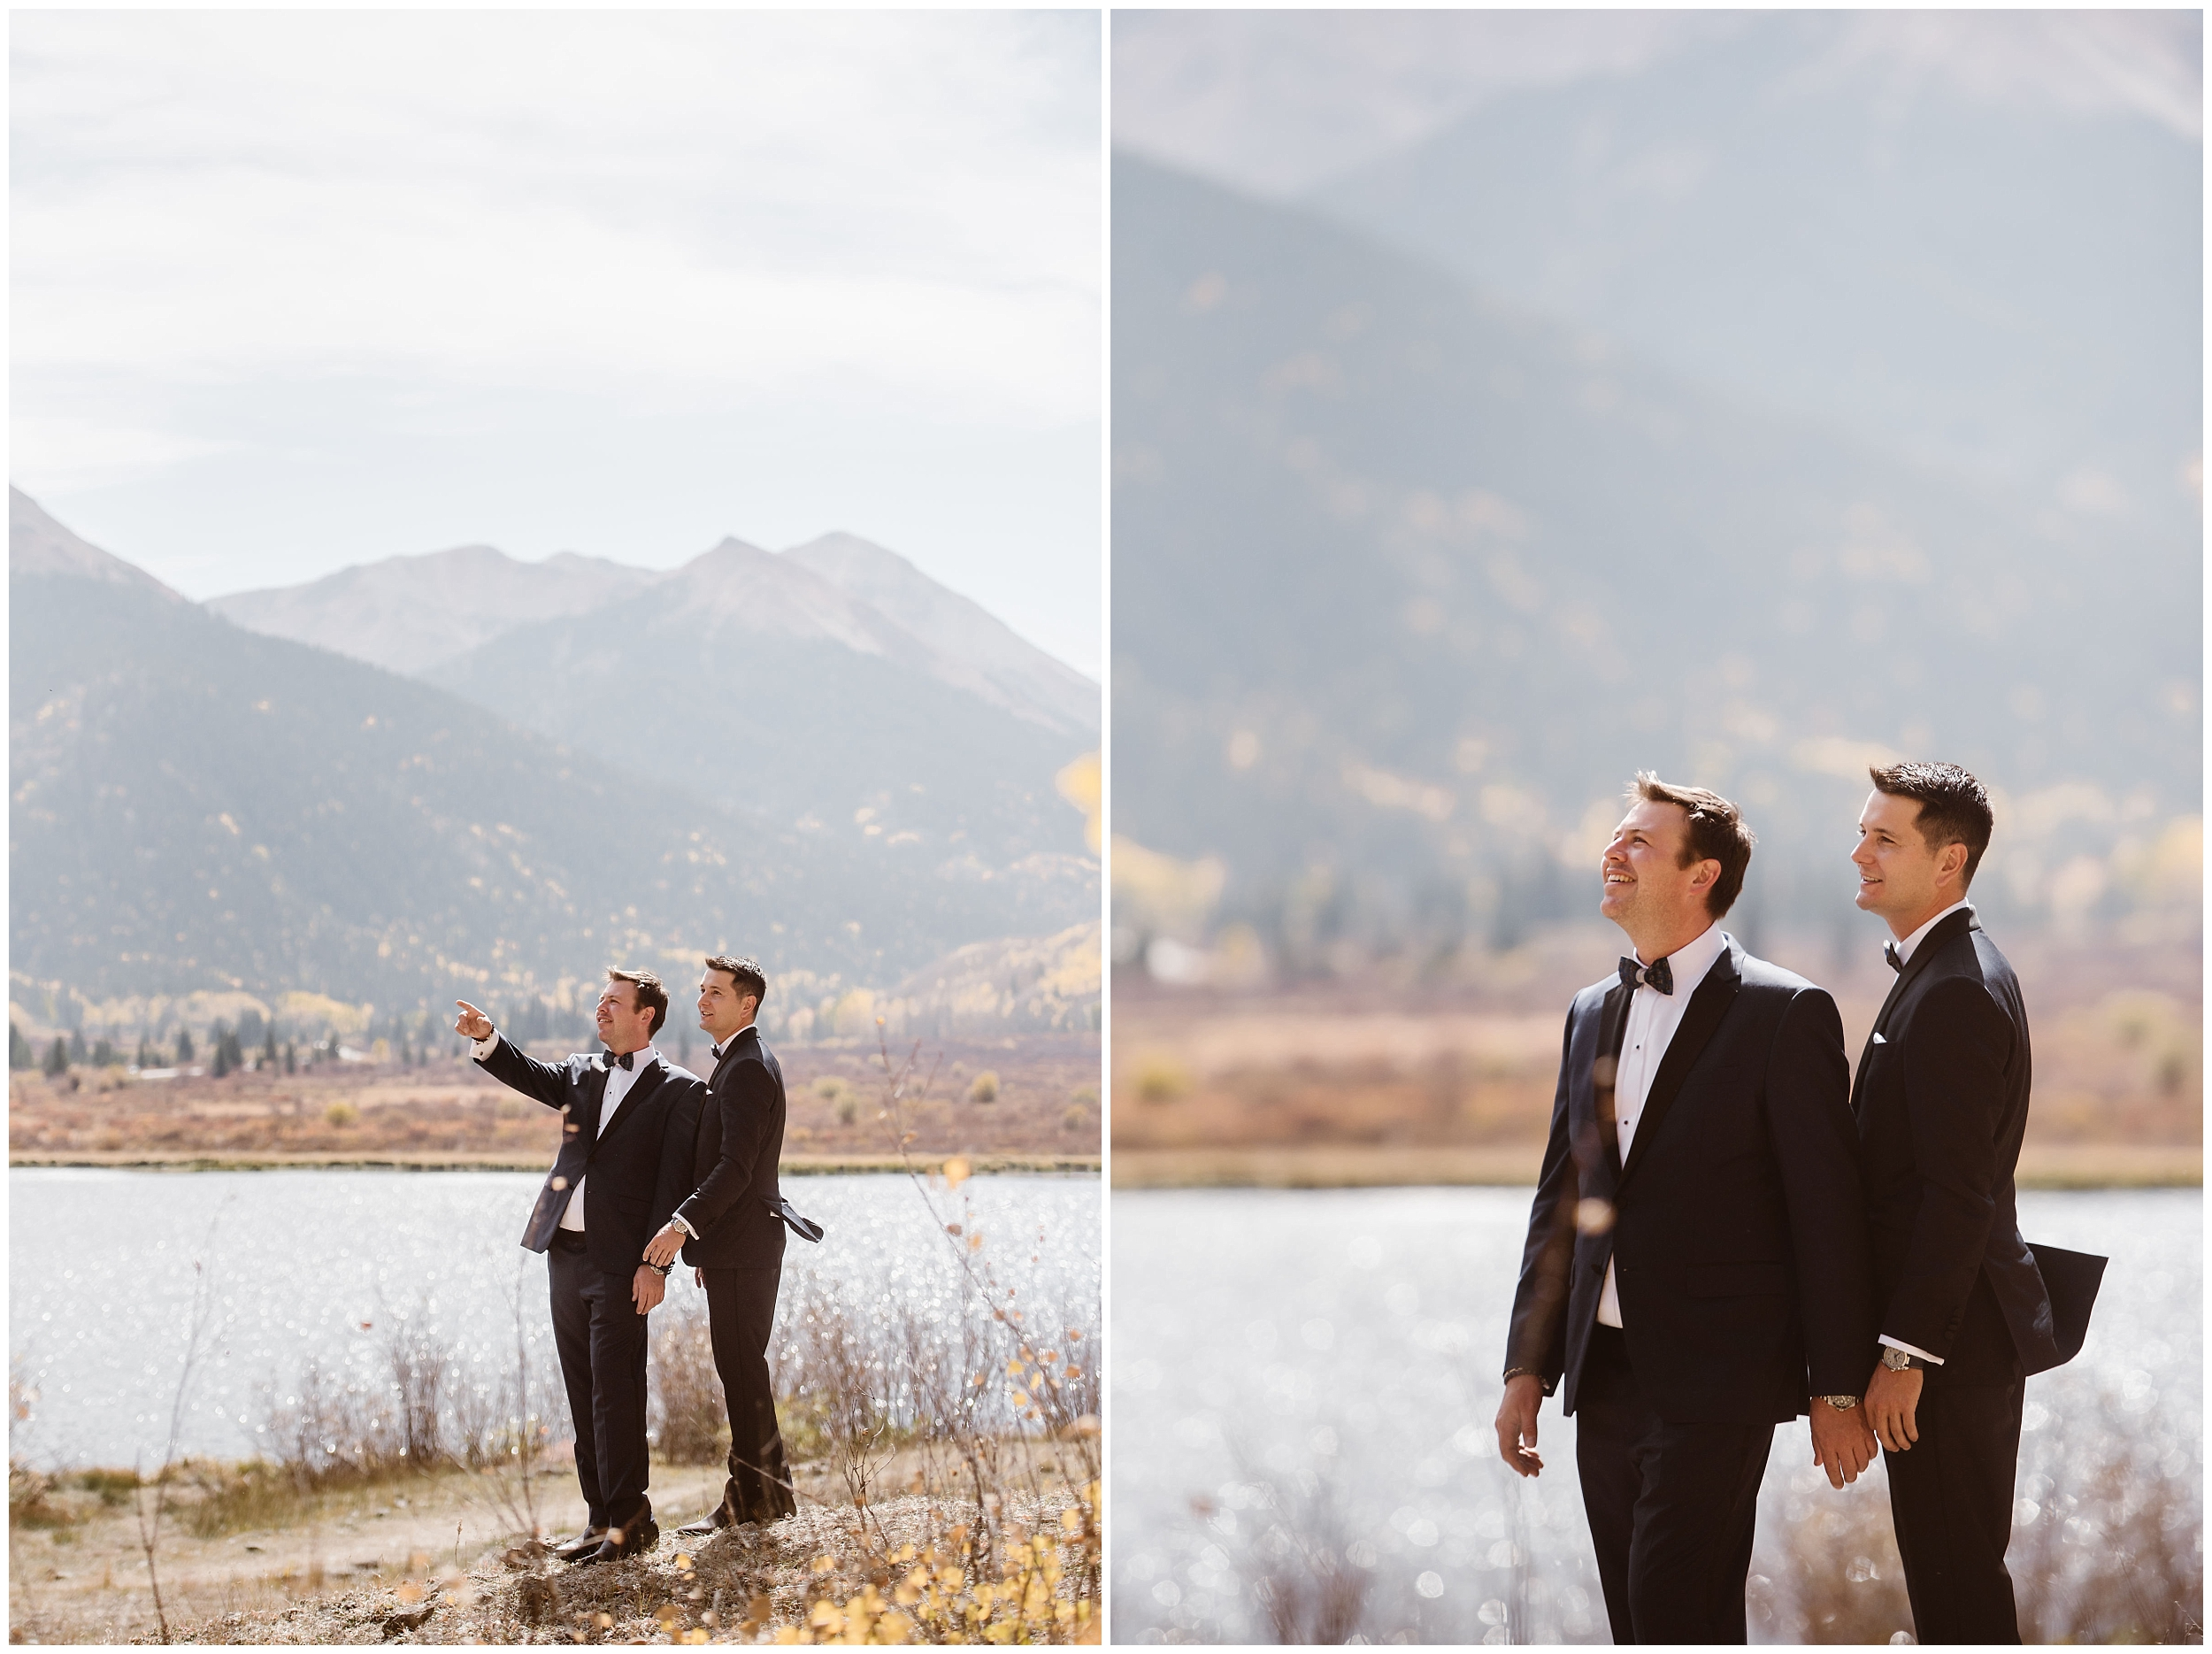 Brian and Ernie stand by the lake in these side-by-side elopement photos captured by Adventure Instead., a Colorado elopement photographer. In the photo on the left, the two grooms point up toward the mountain. In the photo on the right, the two look up at the golden and green mountains together.